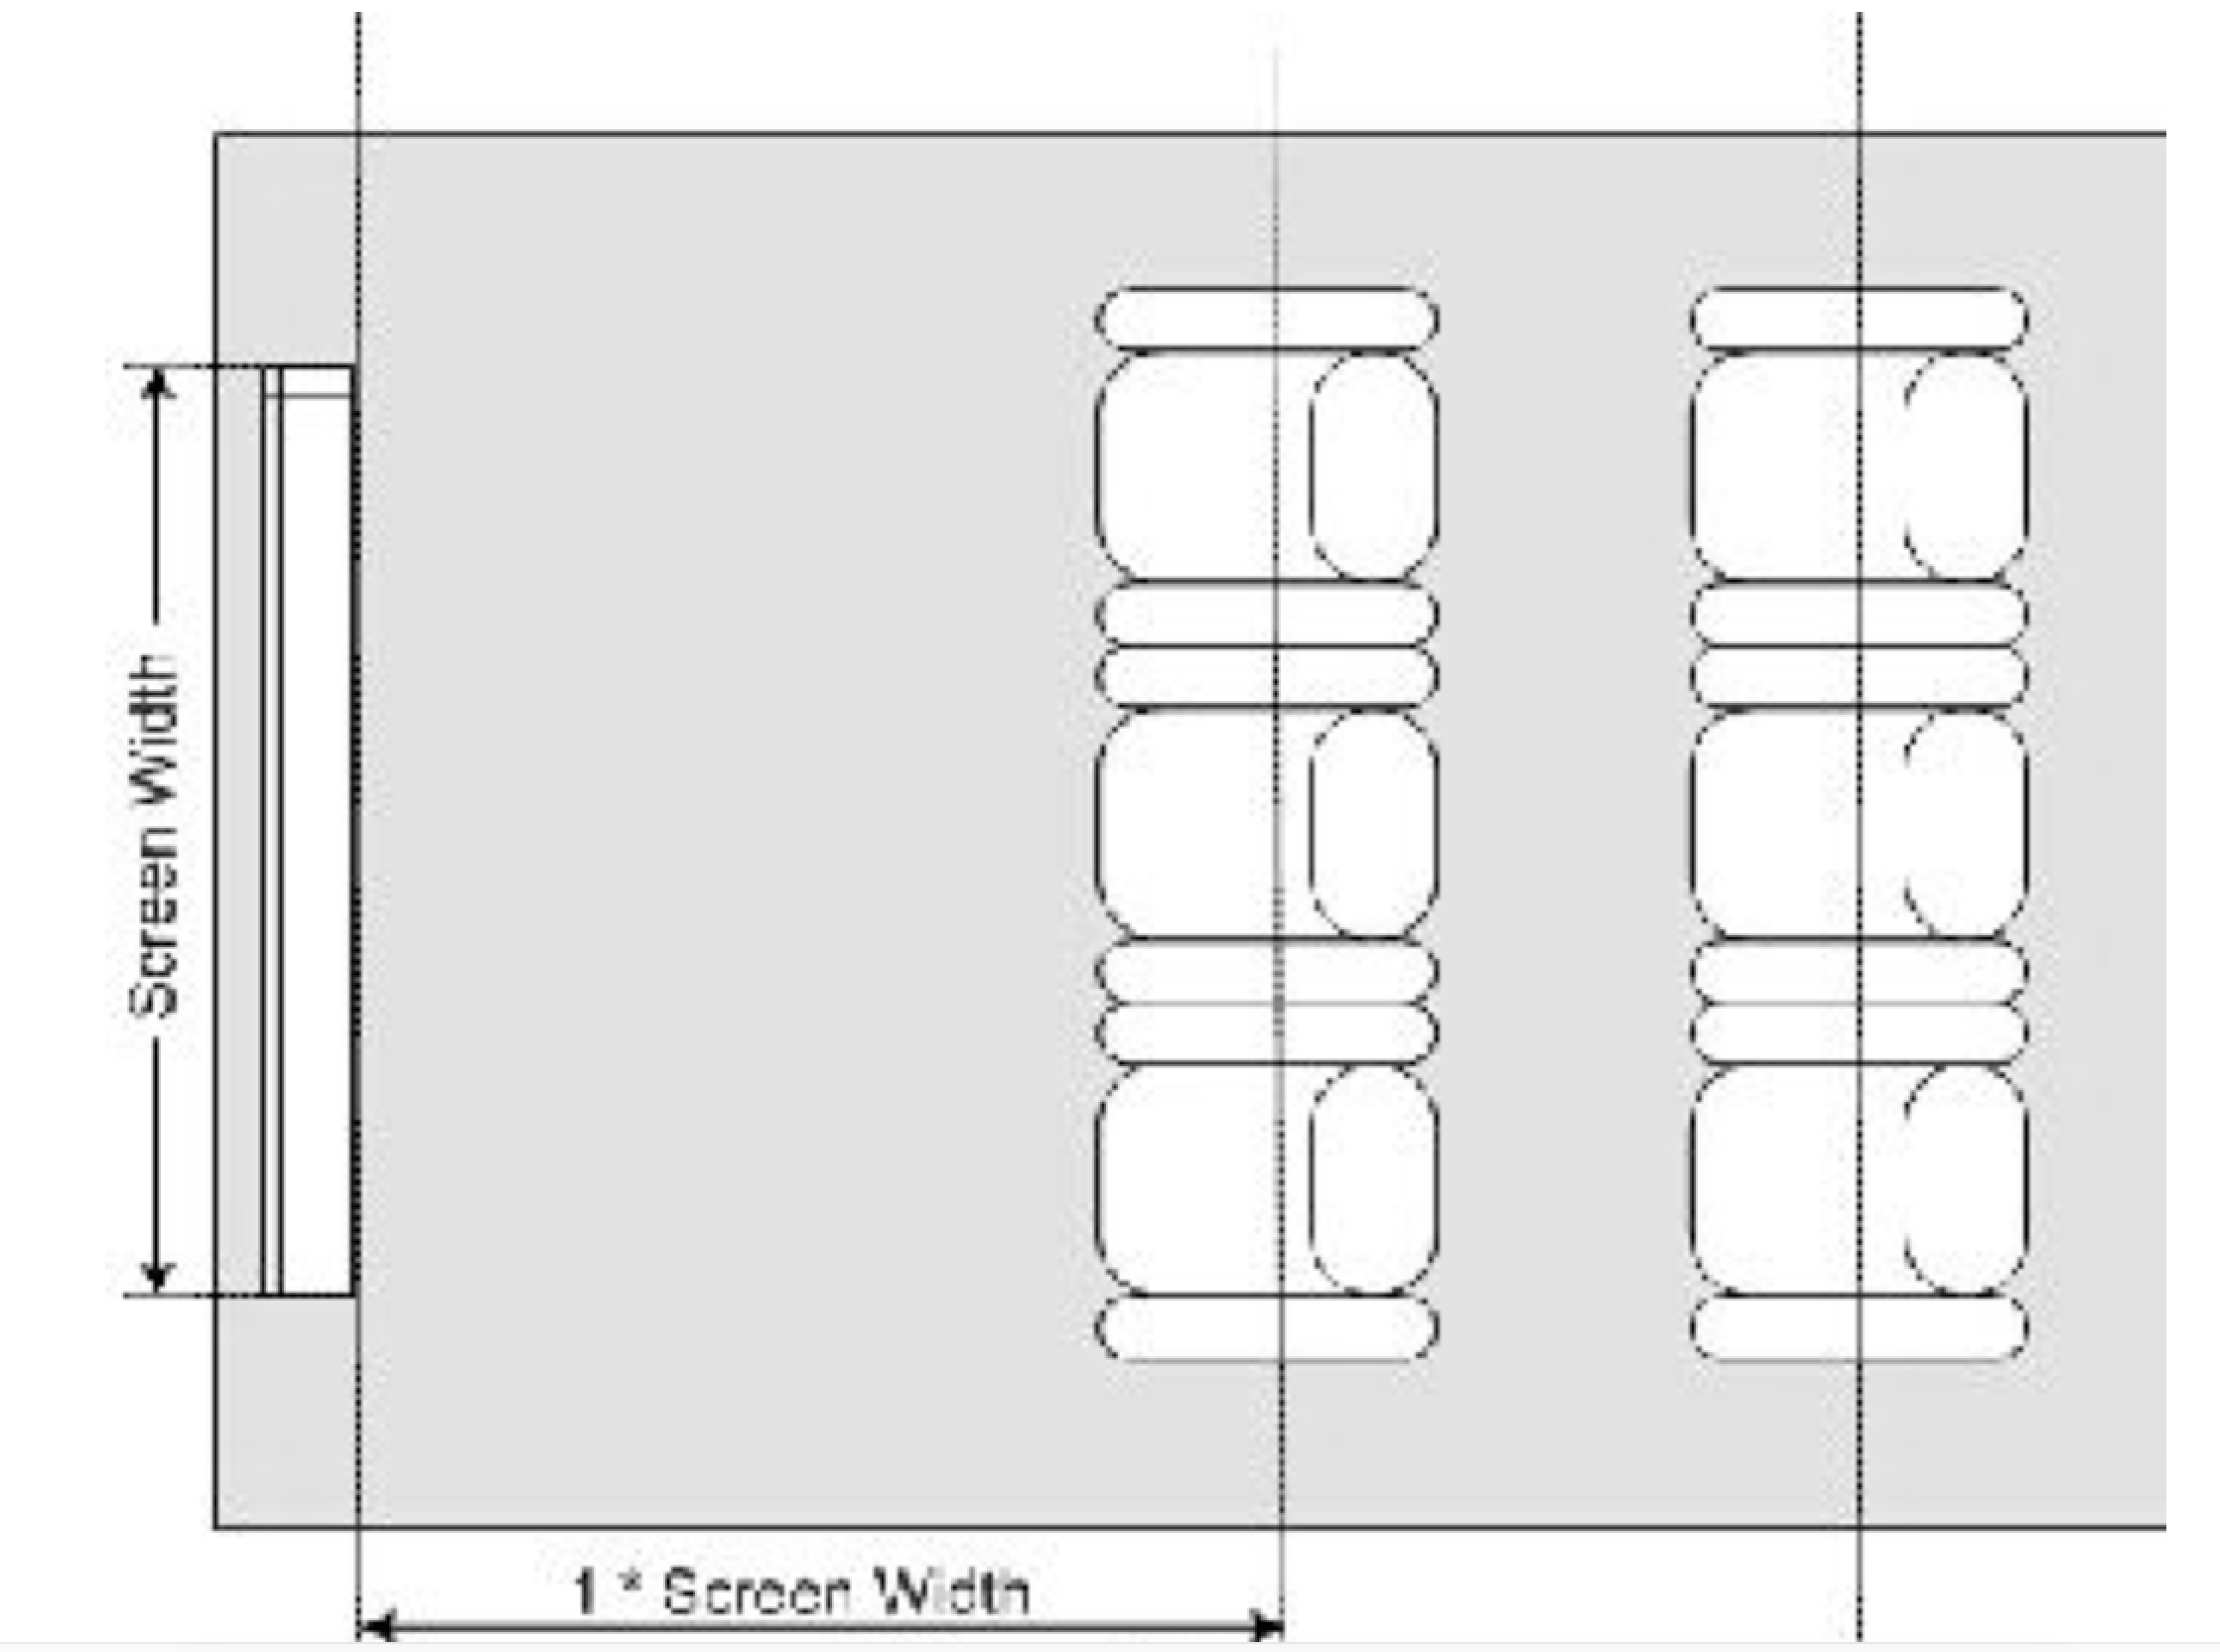 Home cinema seating locations recommended distances